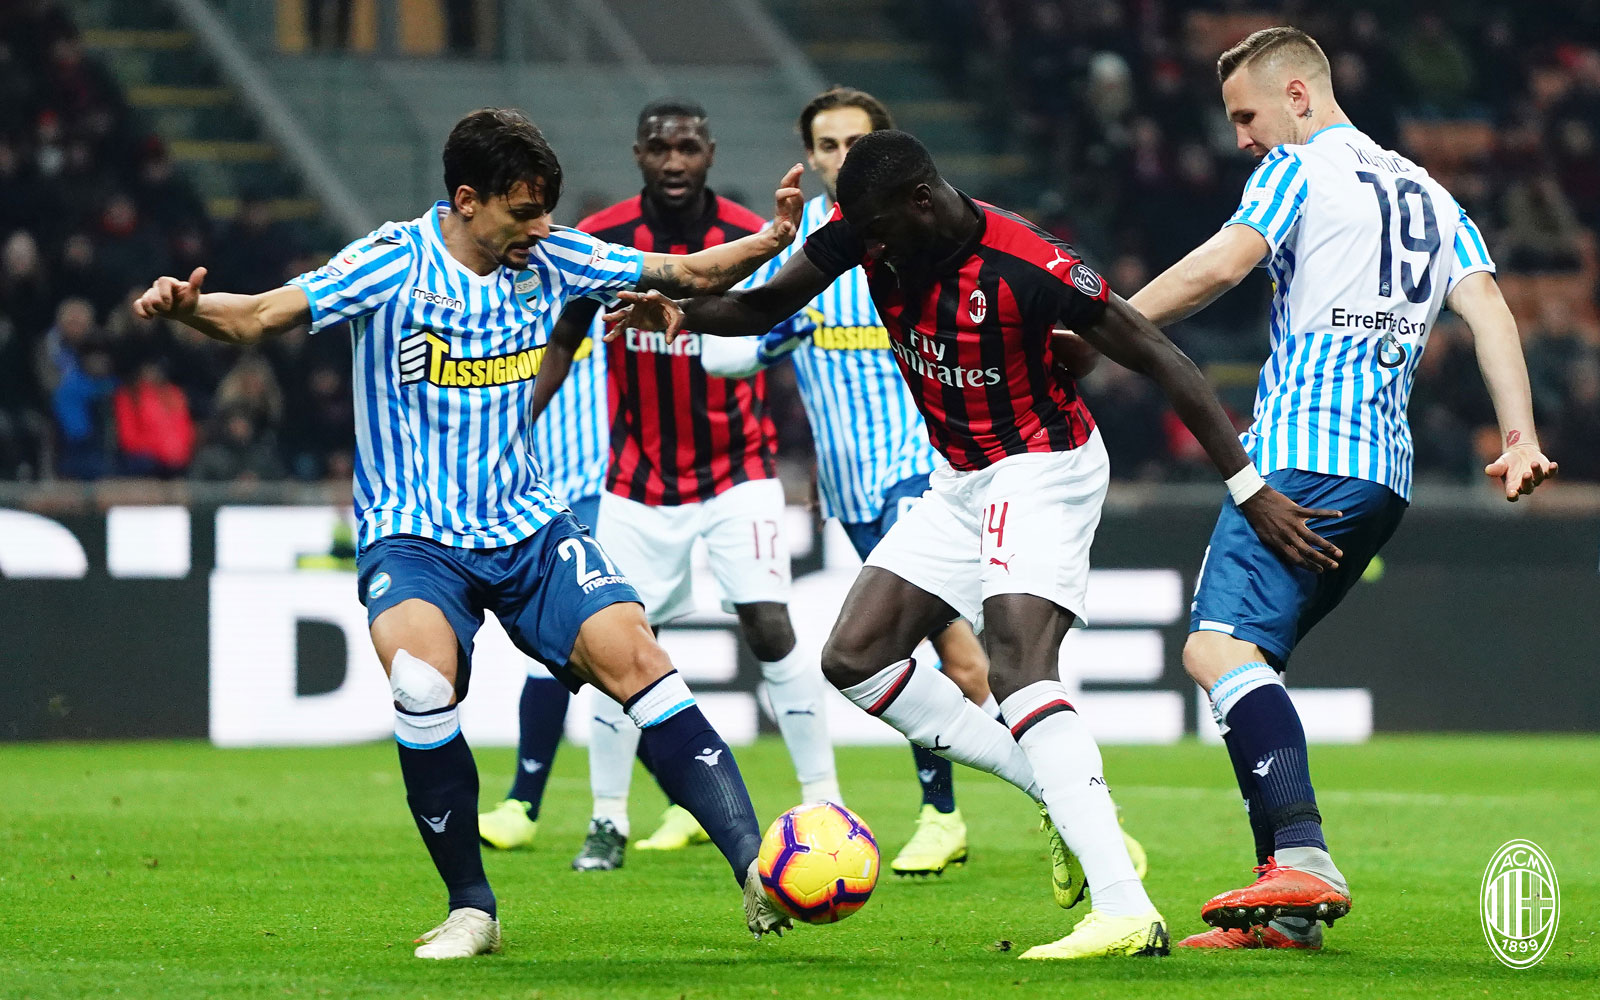 Tiémoué Bakayoko during Milan-SPAL at Stadio San Siro on December 29, 2018. (@acmilan.com)